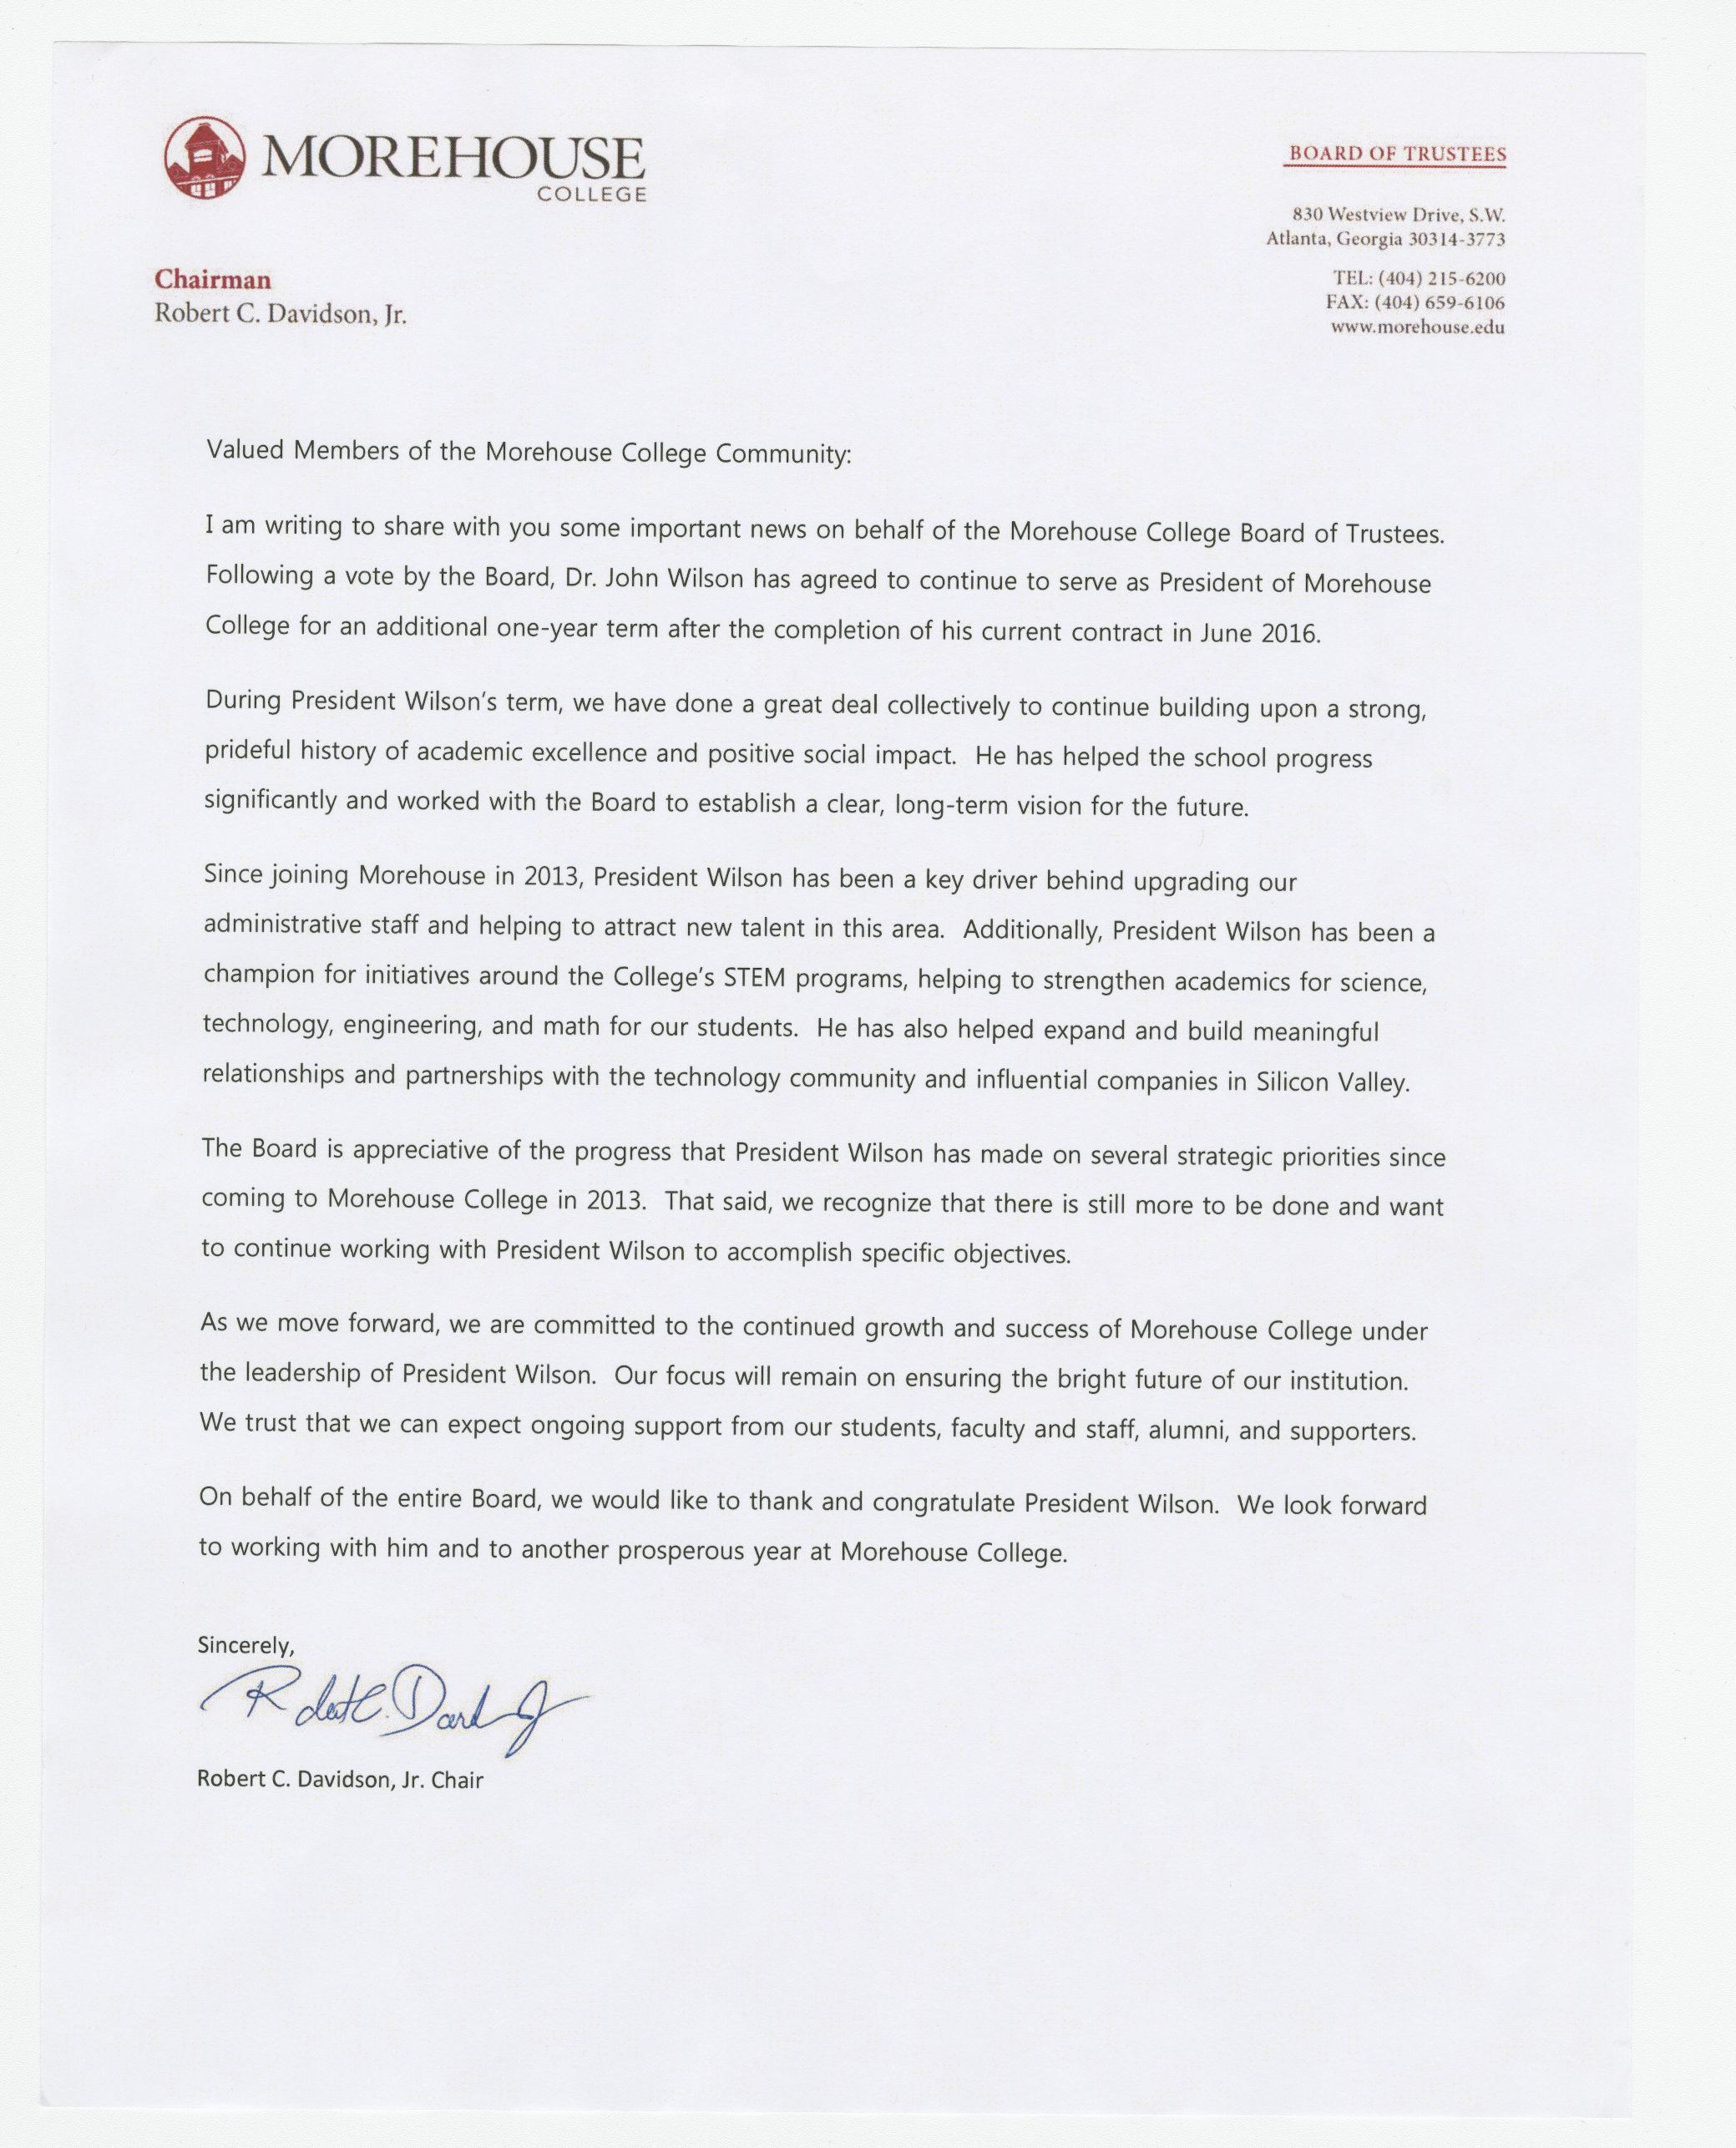 Letter from Robert C. Davidson, Jr., Chairman of the Morehouse College's Board of Trustees; circa 2016<br />